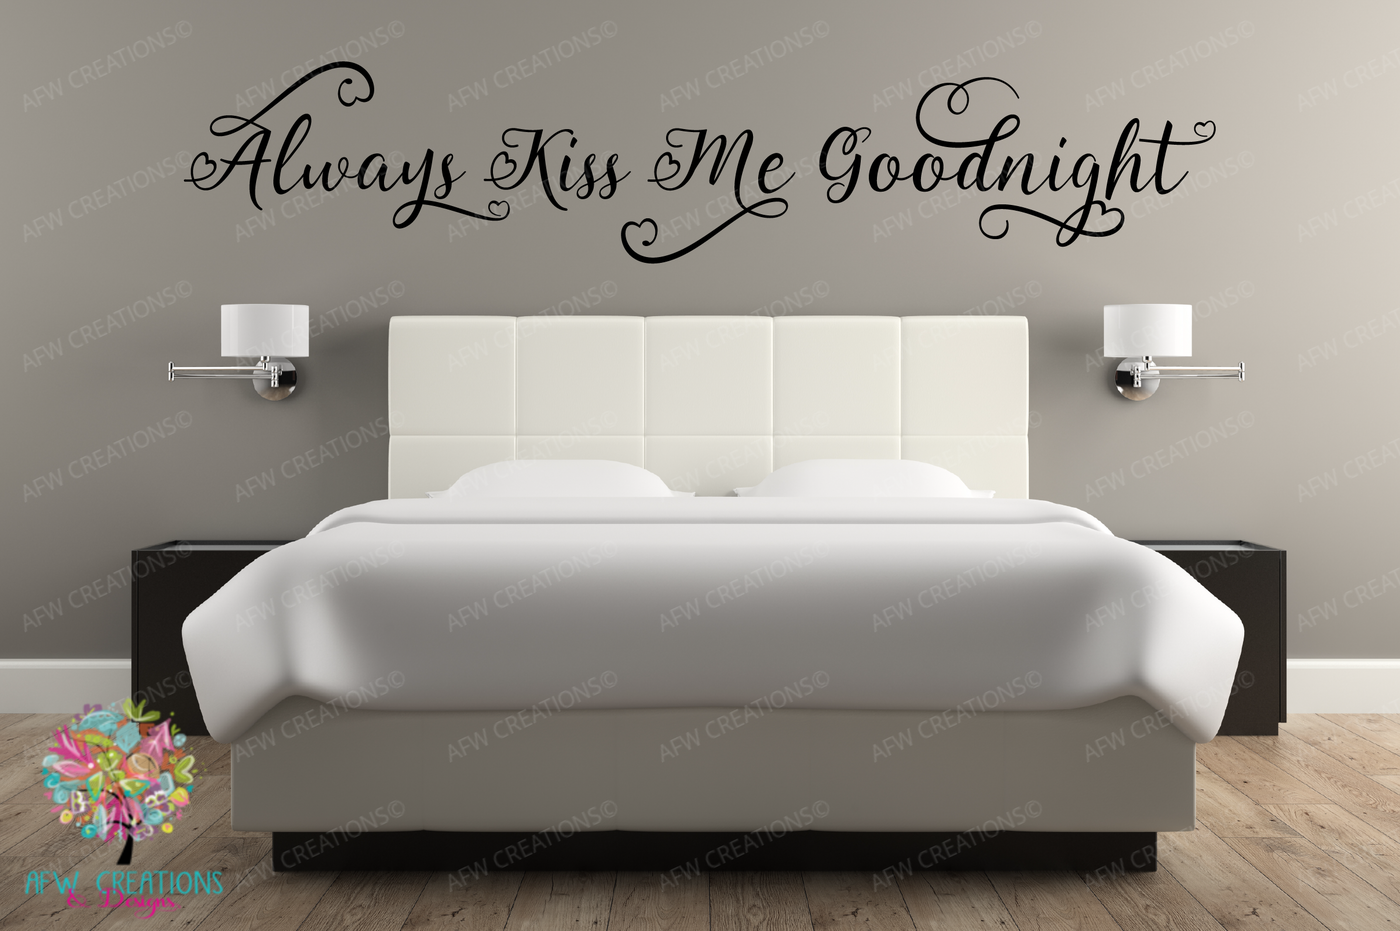 Always Kiss Me Goodnight Bundle Svg Dxf Eps Cut Files By Afw Designs Thehungryjpeg Com